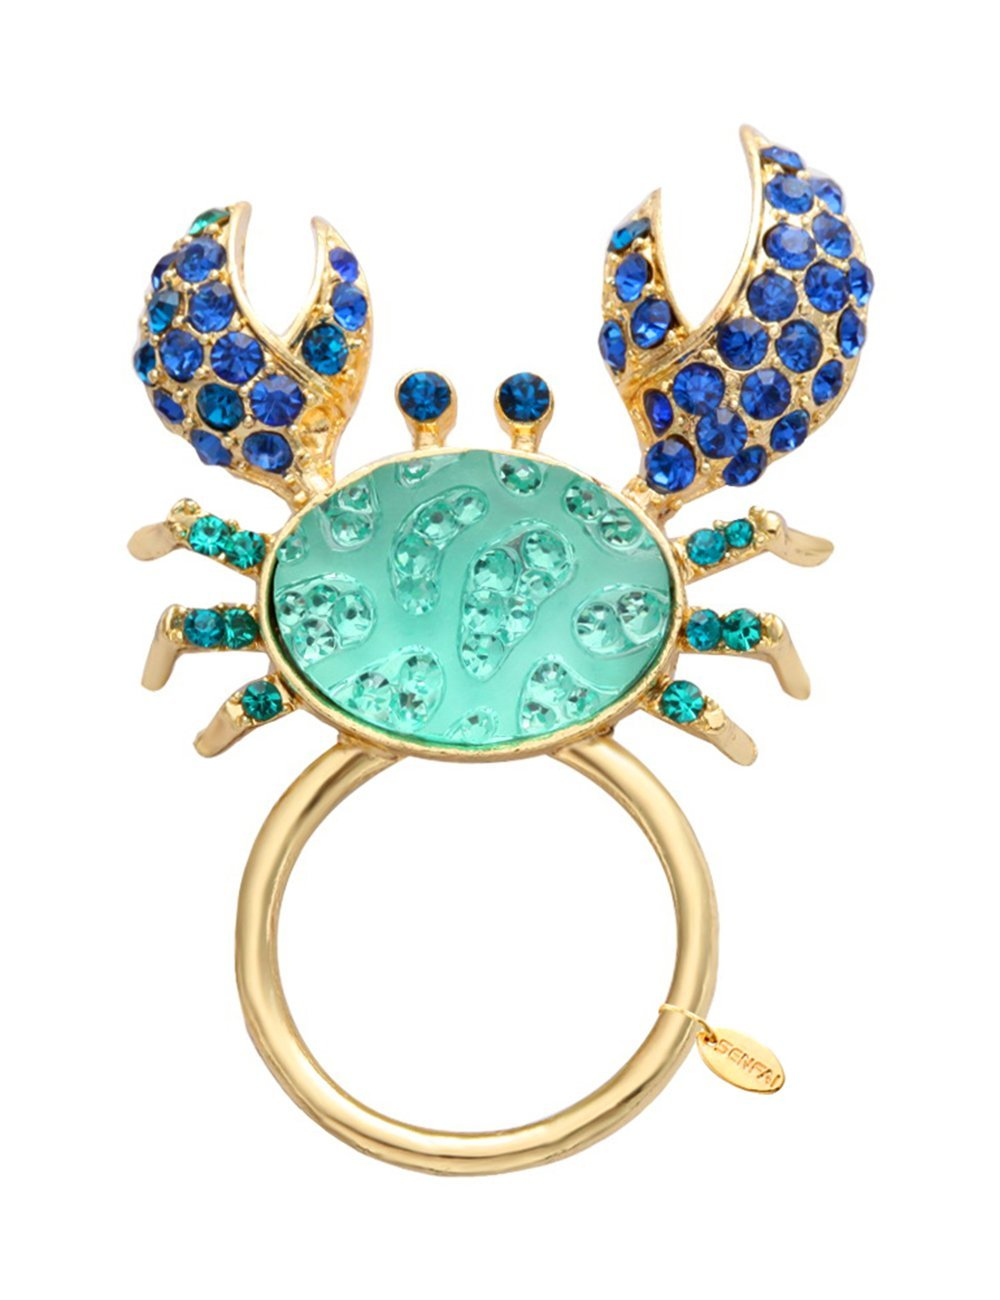 SENFAI Blue Color crab With Crystal Megnet Eyeglass Holder For Womens' Jewelry